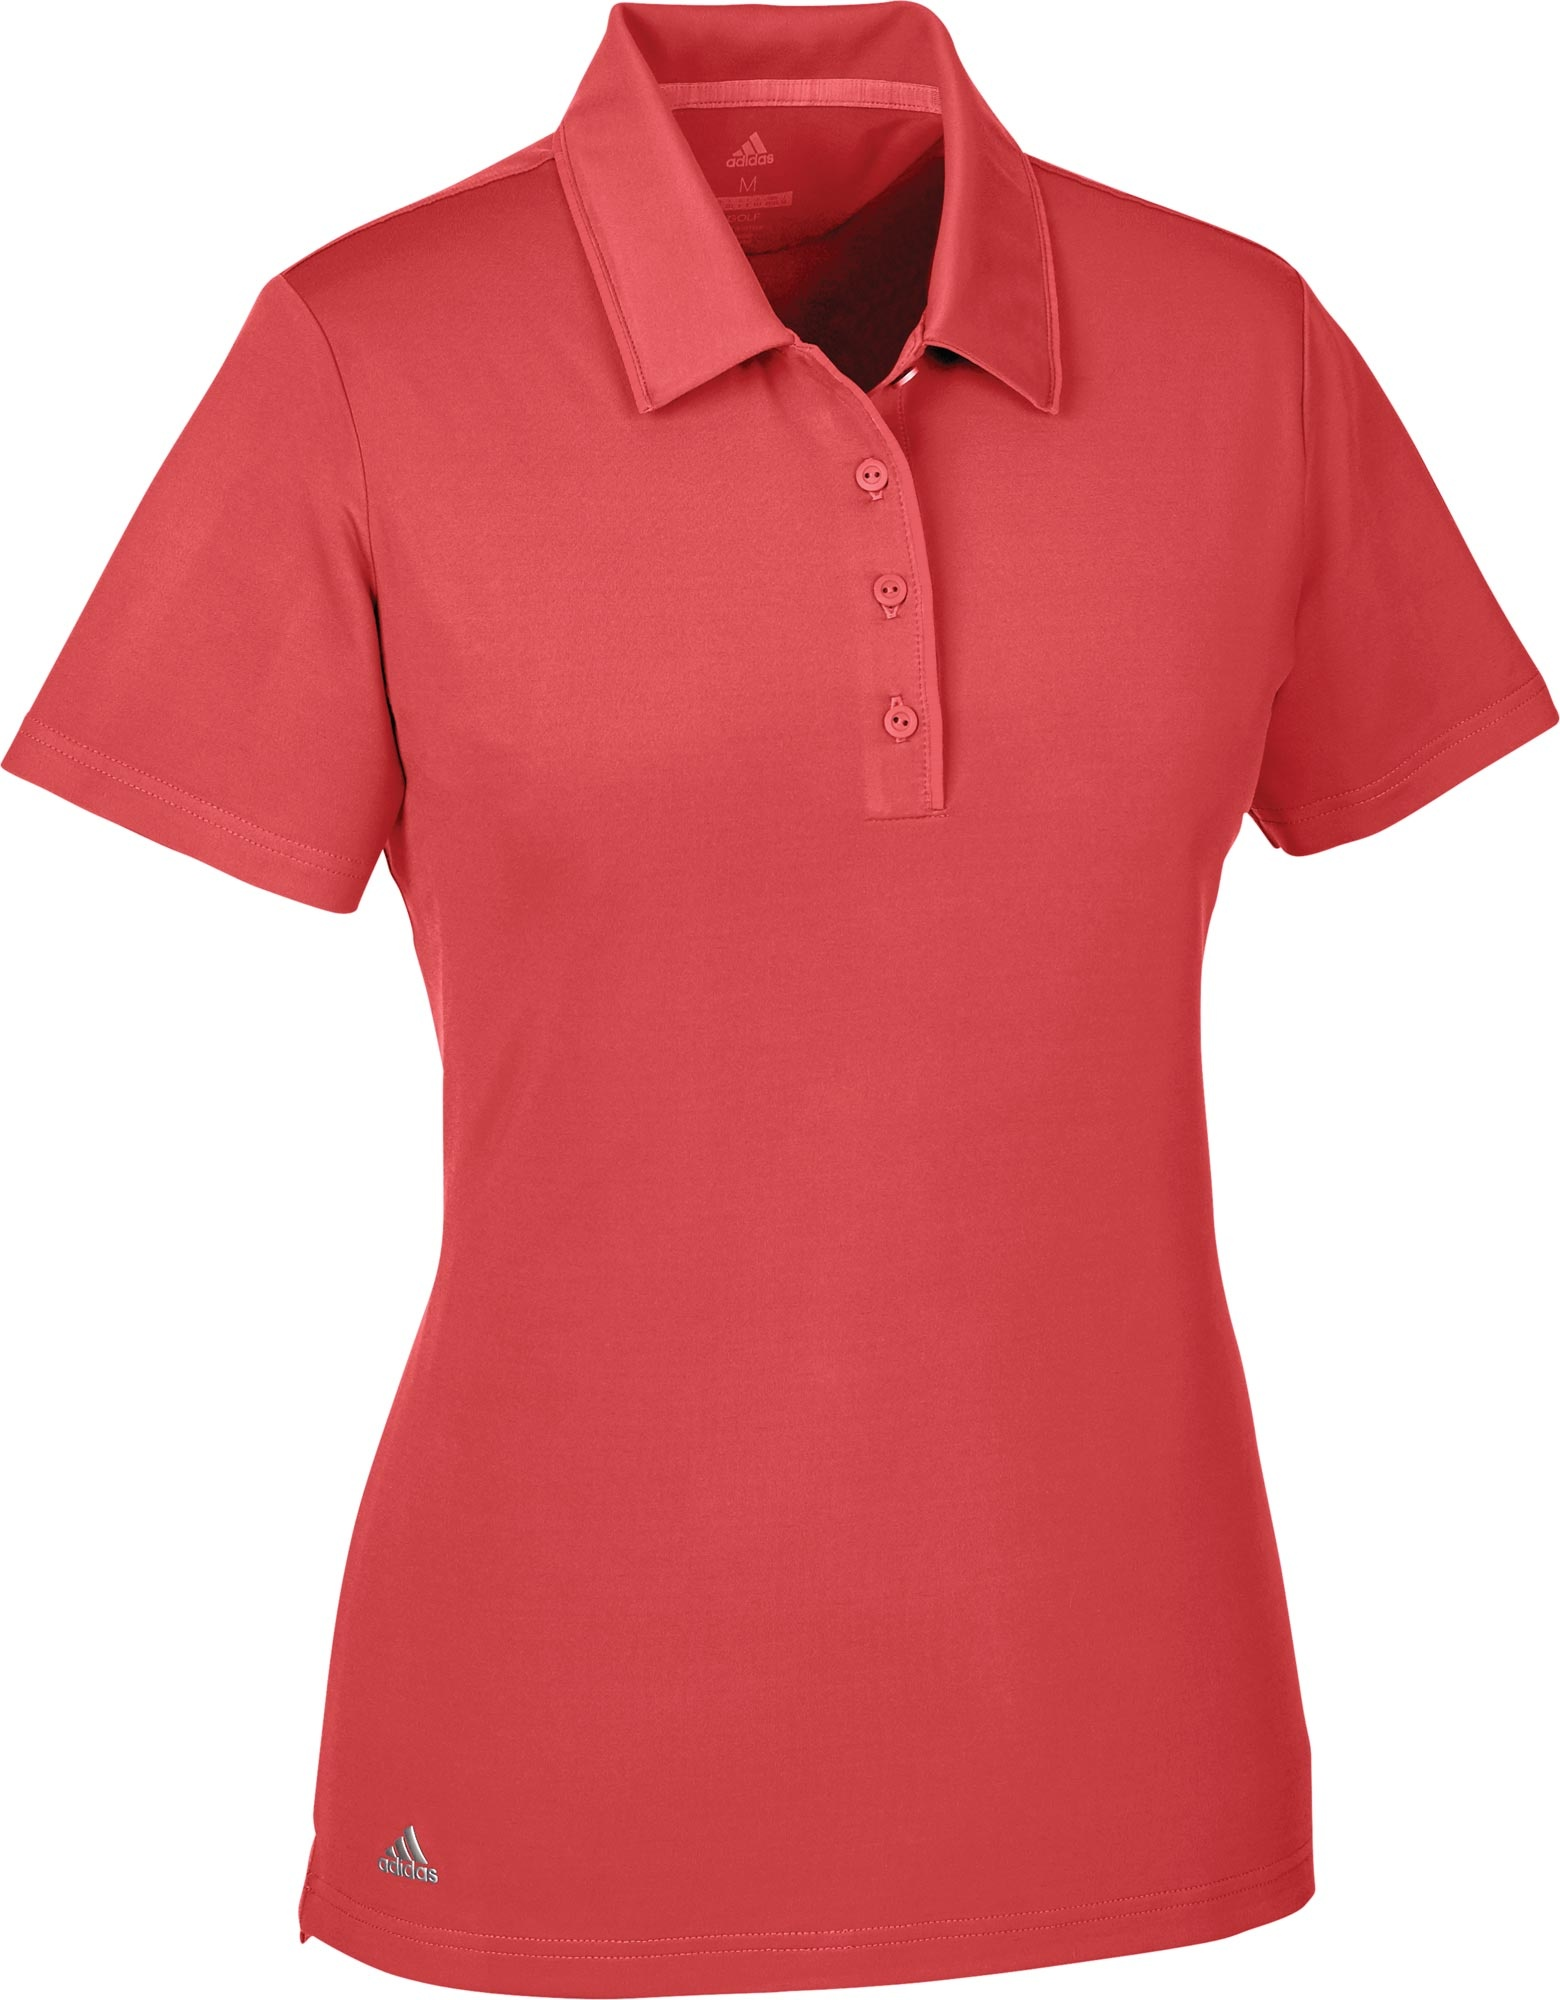 Ladies Golf Shirts On Sale - Ficts